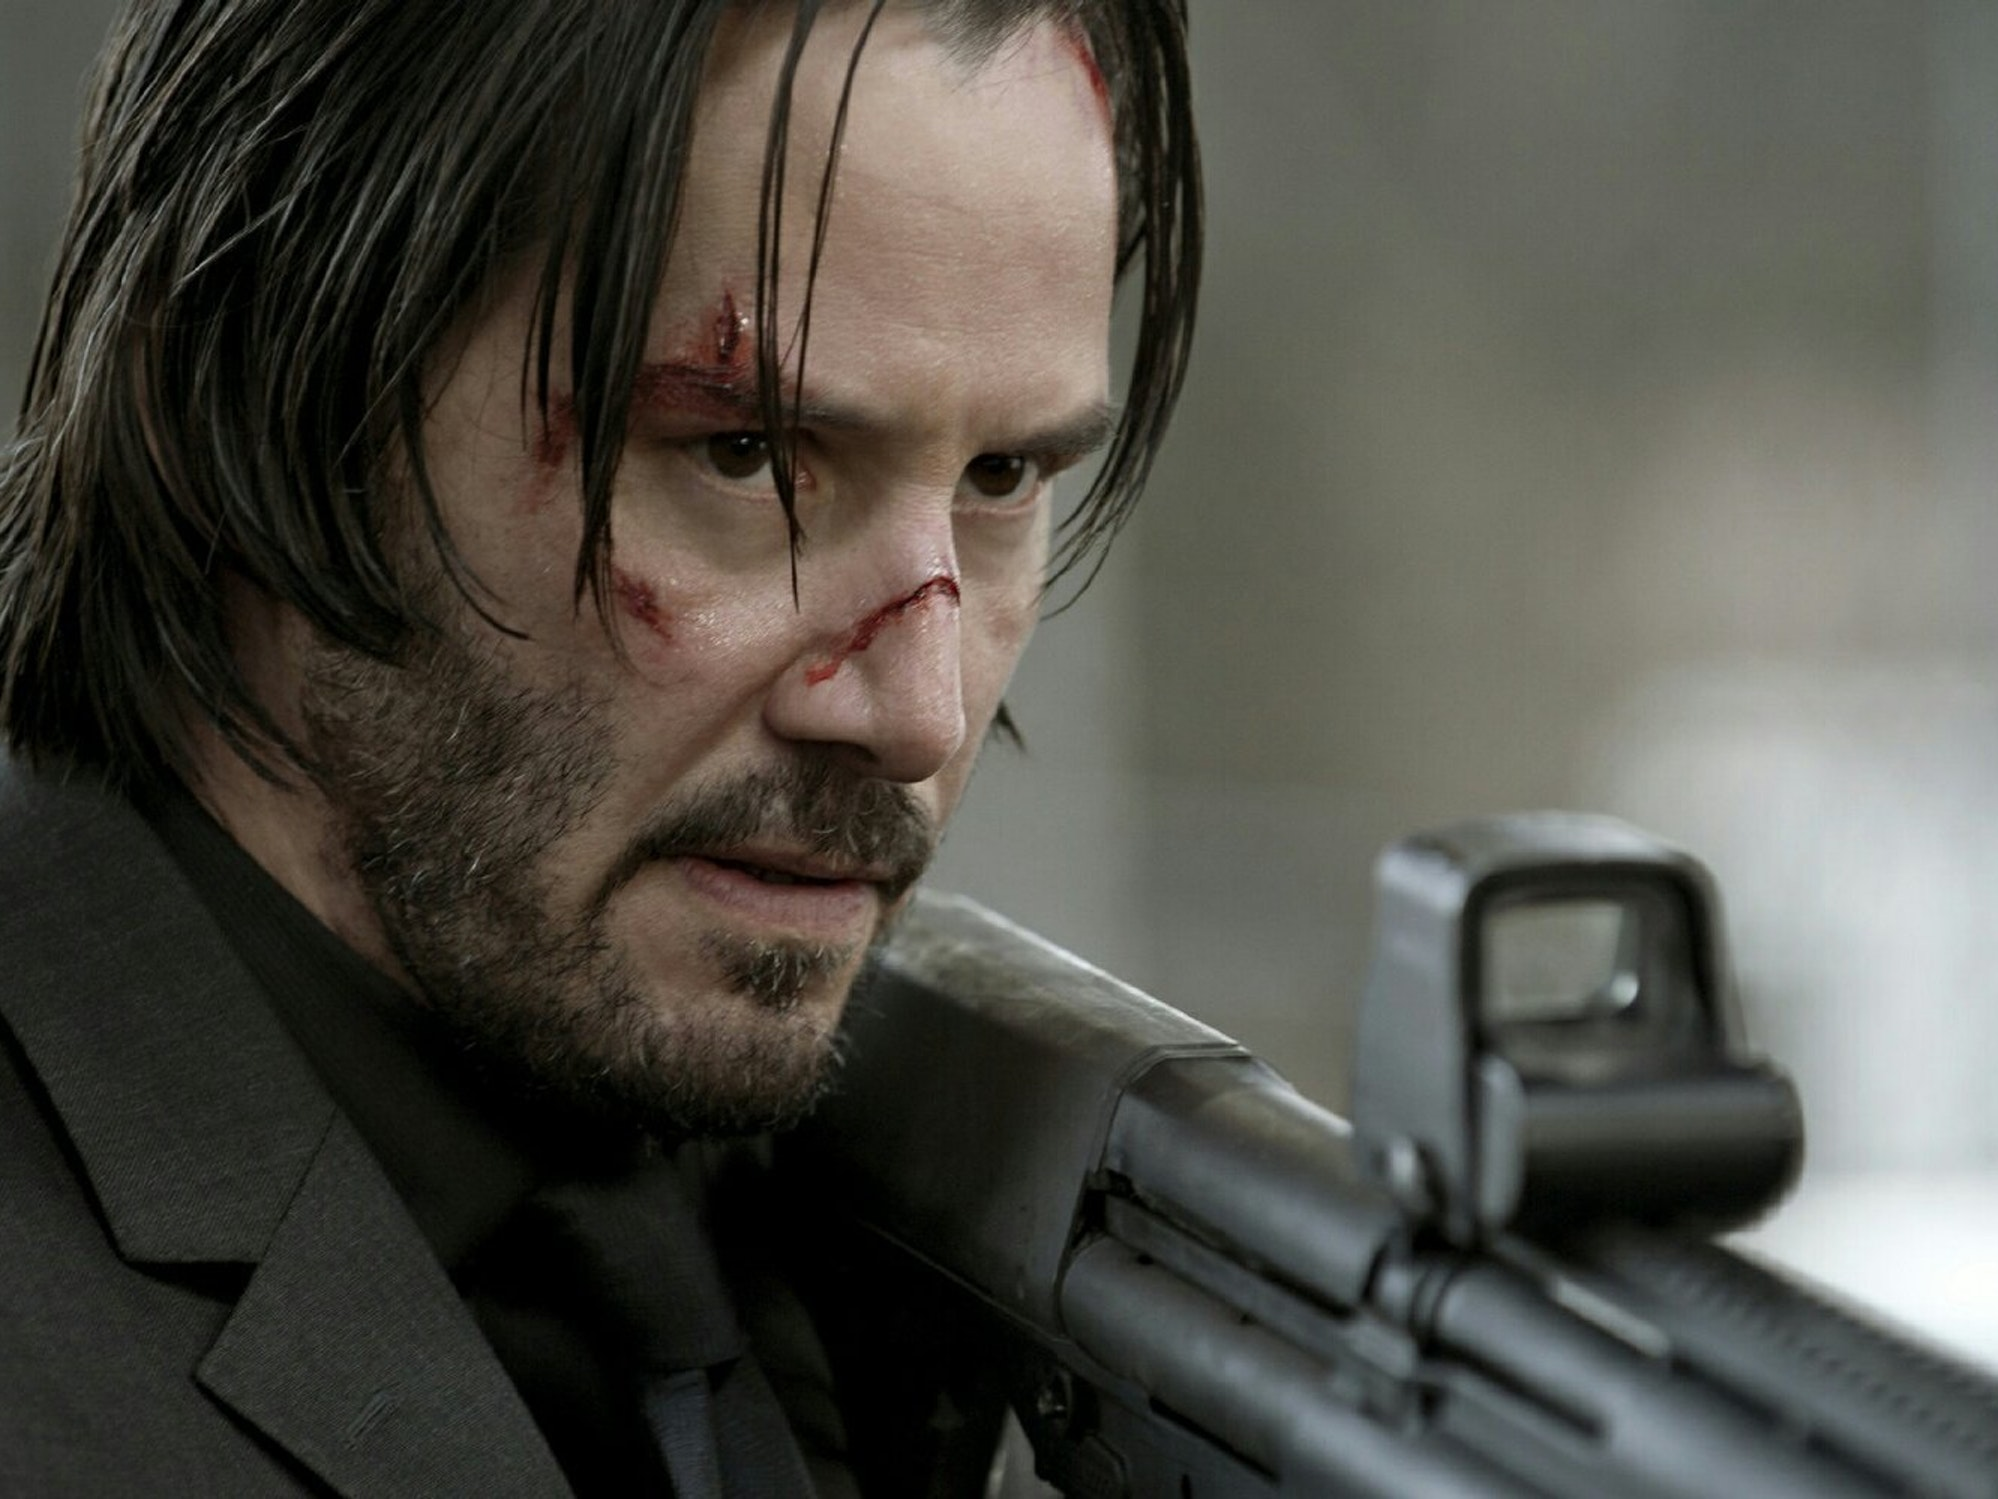 The Weird Assassin's Economy of 'John Wick' Is a Legit Black Market